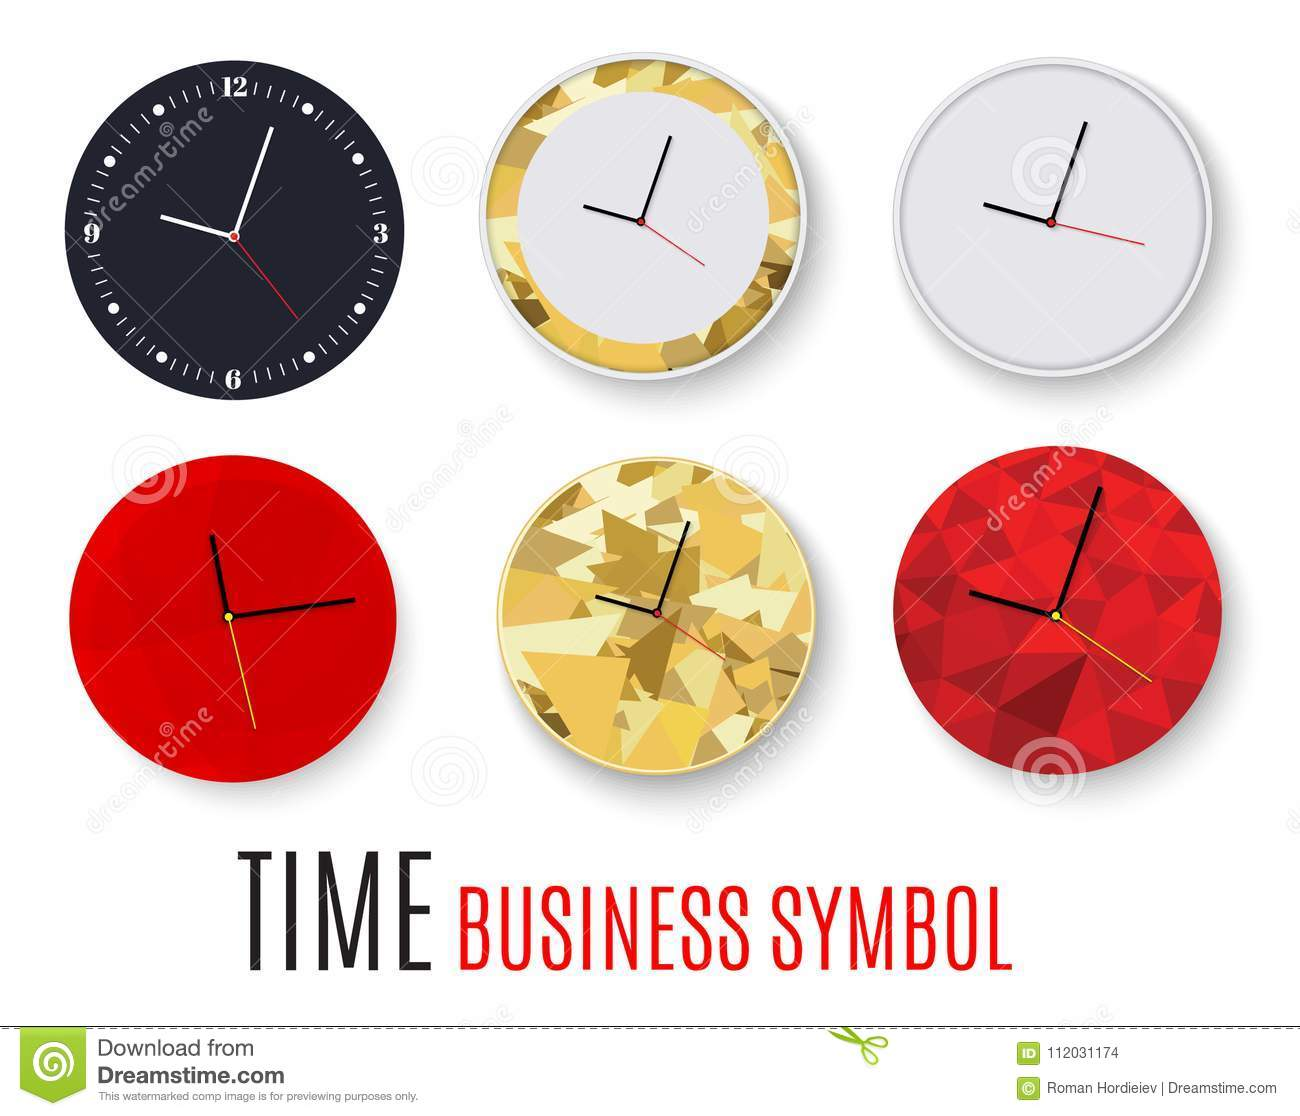 Wall clock office template design in vector closeup the layout for download wall clock office template design in vector closeup the layout for branding and ccuart Choice Image